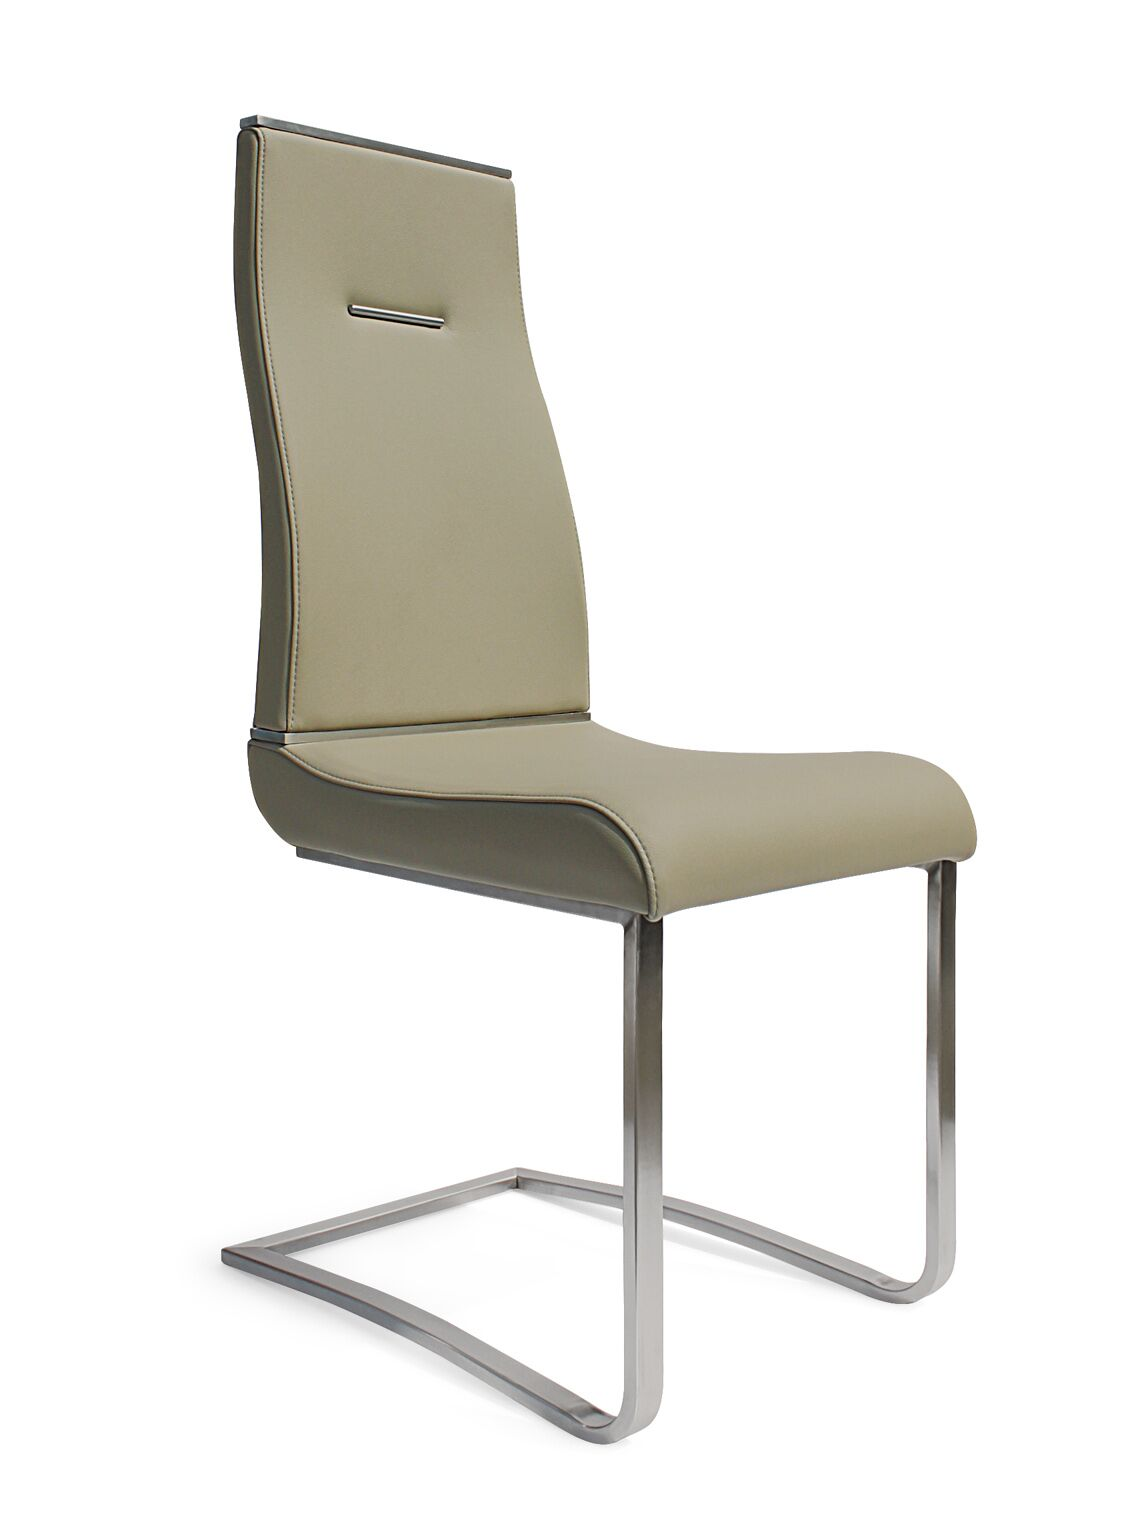 Mcclain Upholstered Dining Chair (Set of 2) Leg Color: Chrome, Upholstery Color: Gray